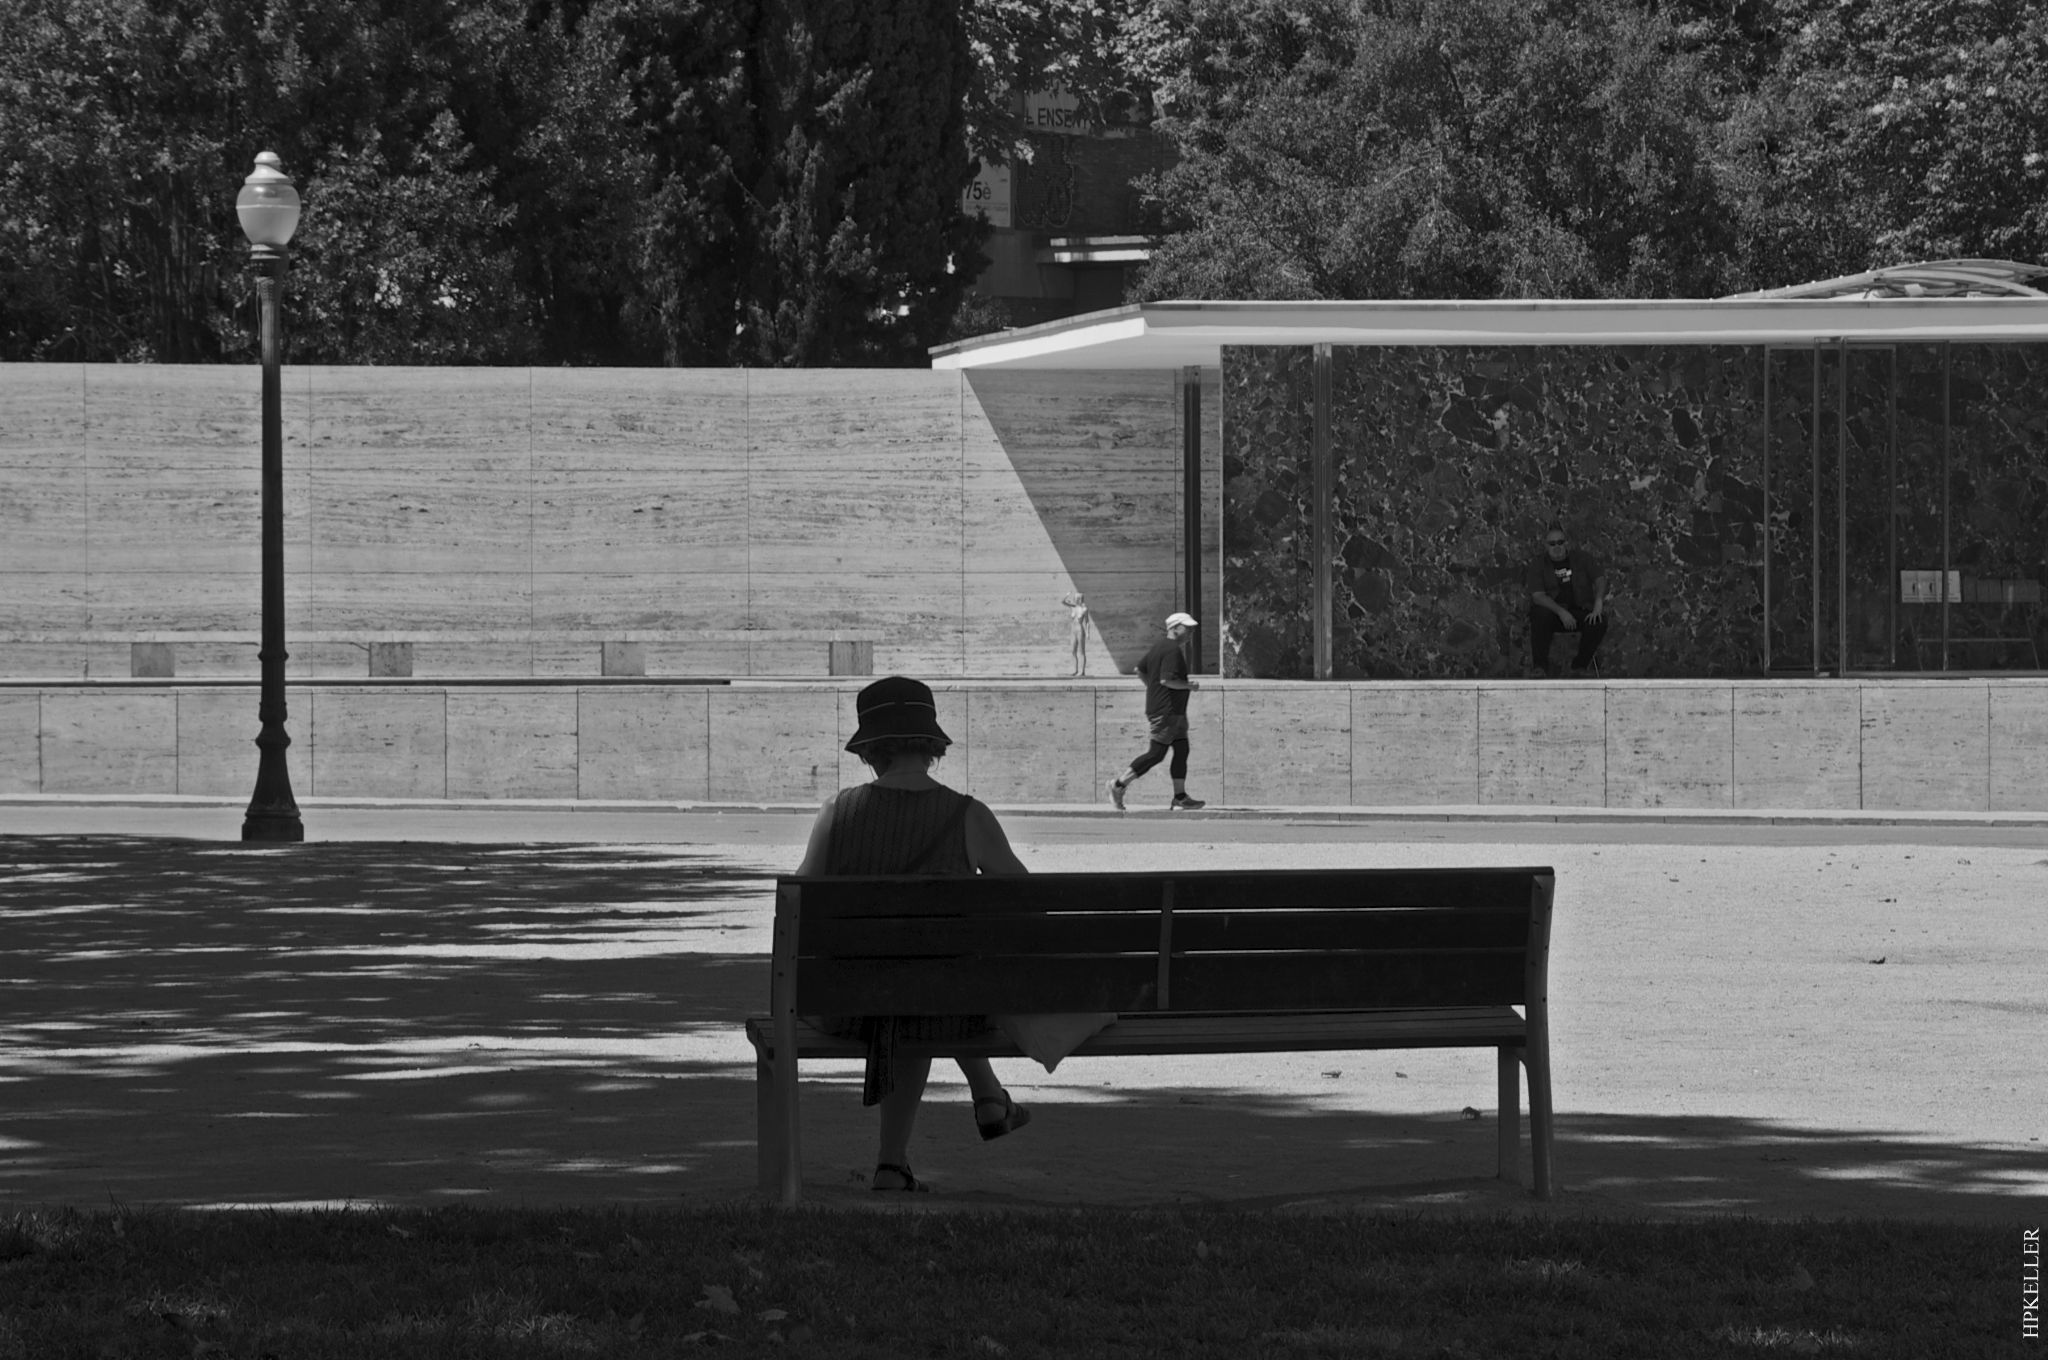 Some days ago in Barcelona, ... relaxation at the Mies van der Rohe Pavillon. by Hans-Peter Keller